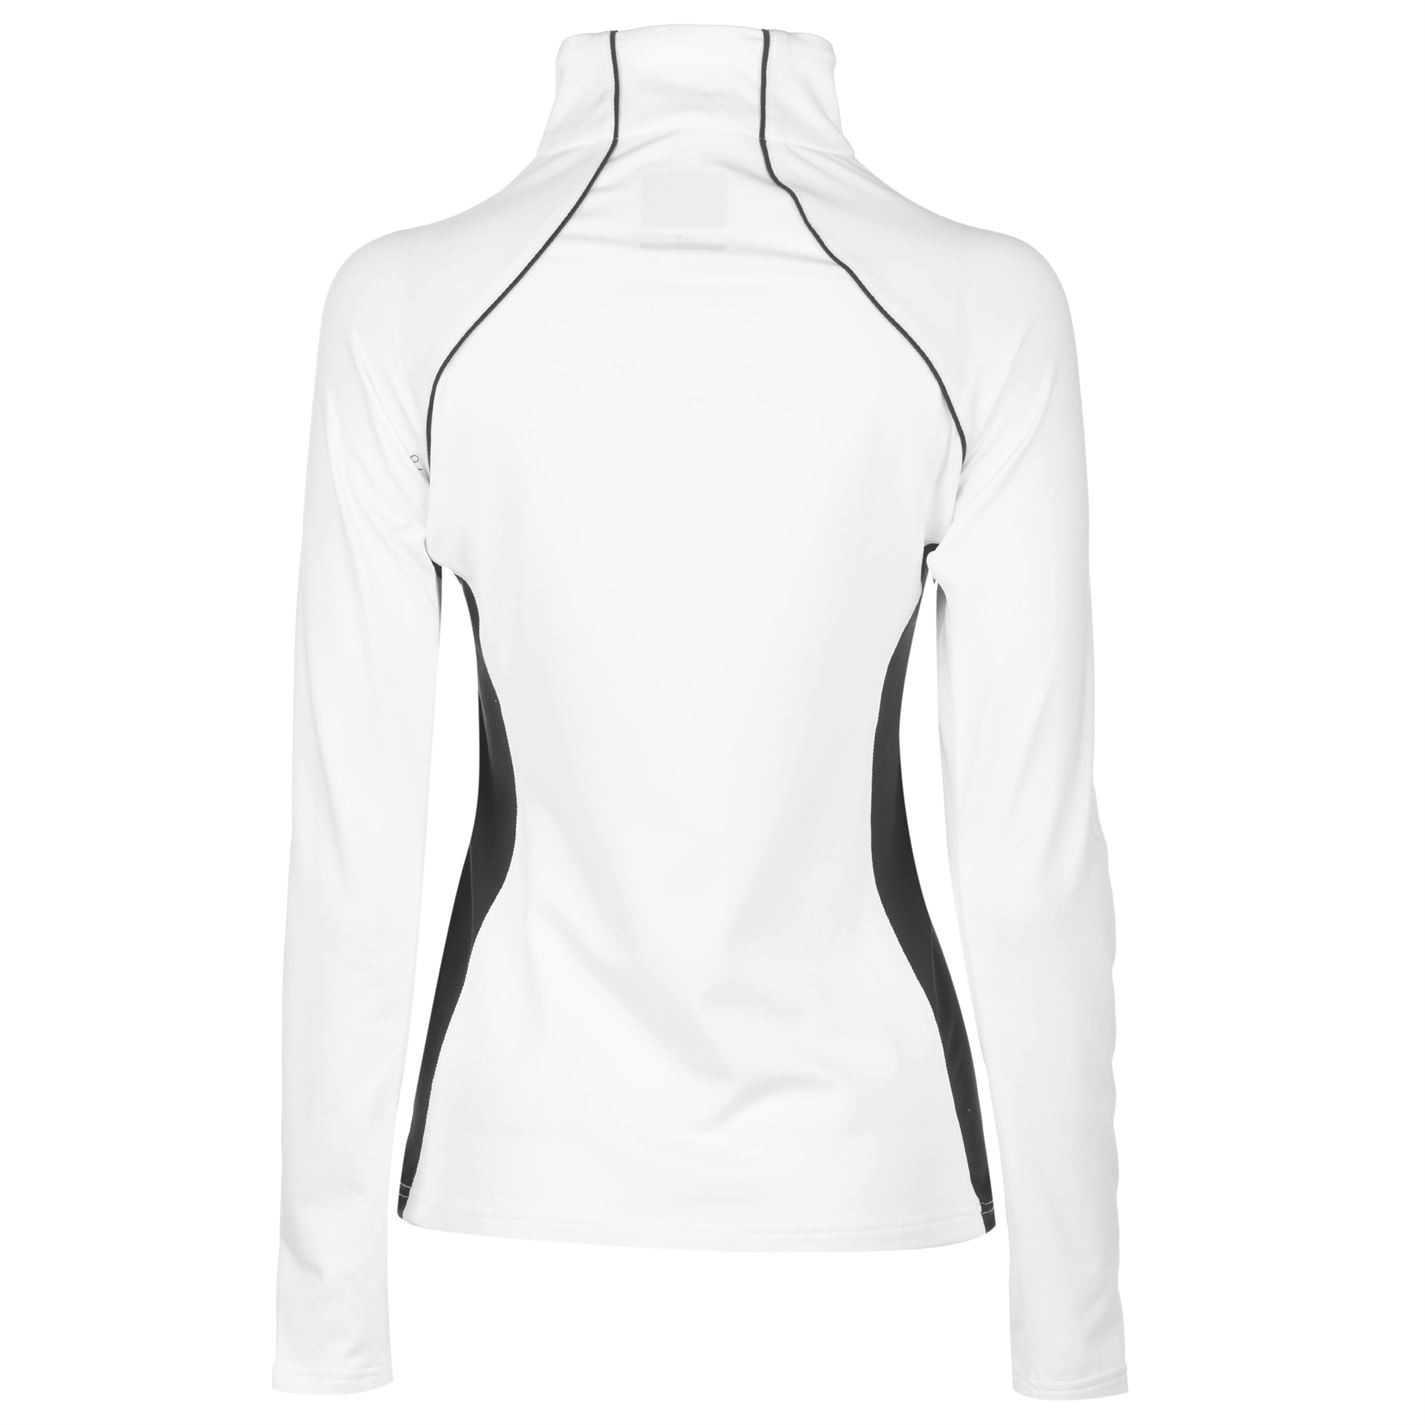 Nevica Vail Zipped Top Ladies Baselayer Compression Armor Thermal Skins Full